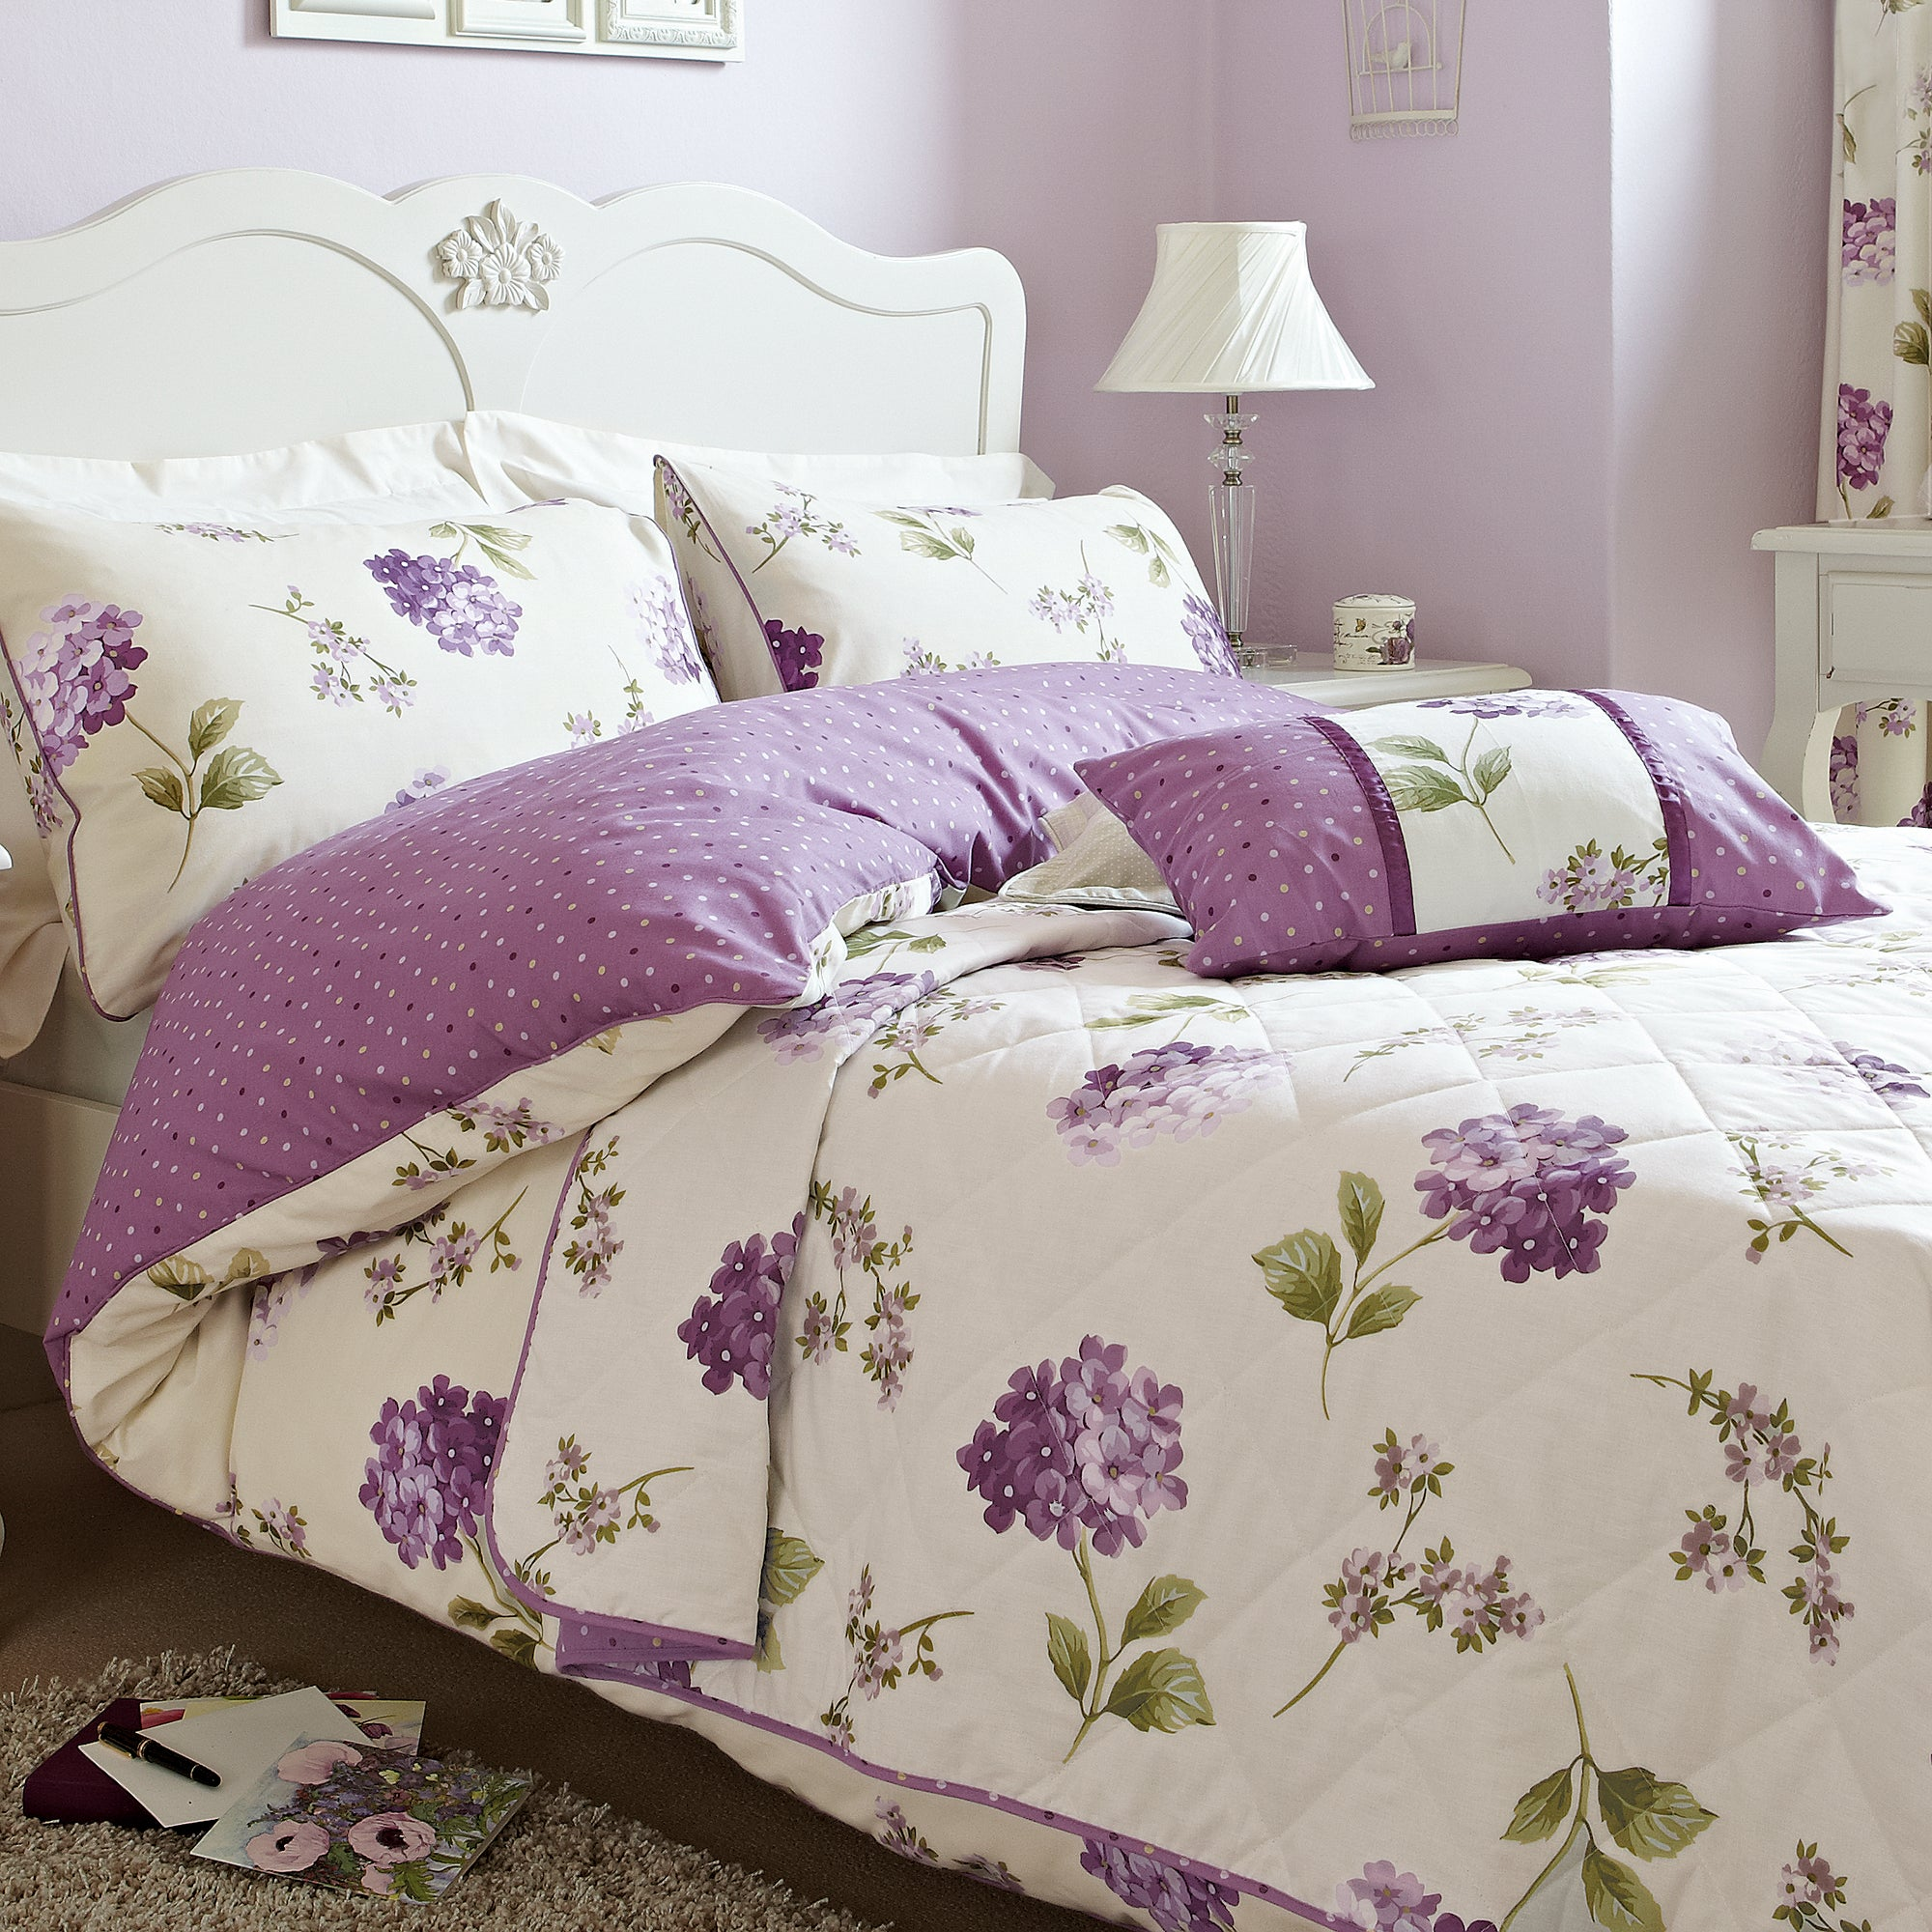 Heather Erin Collection Bedspread